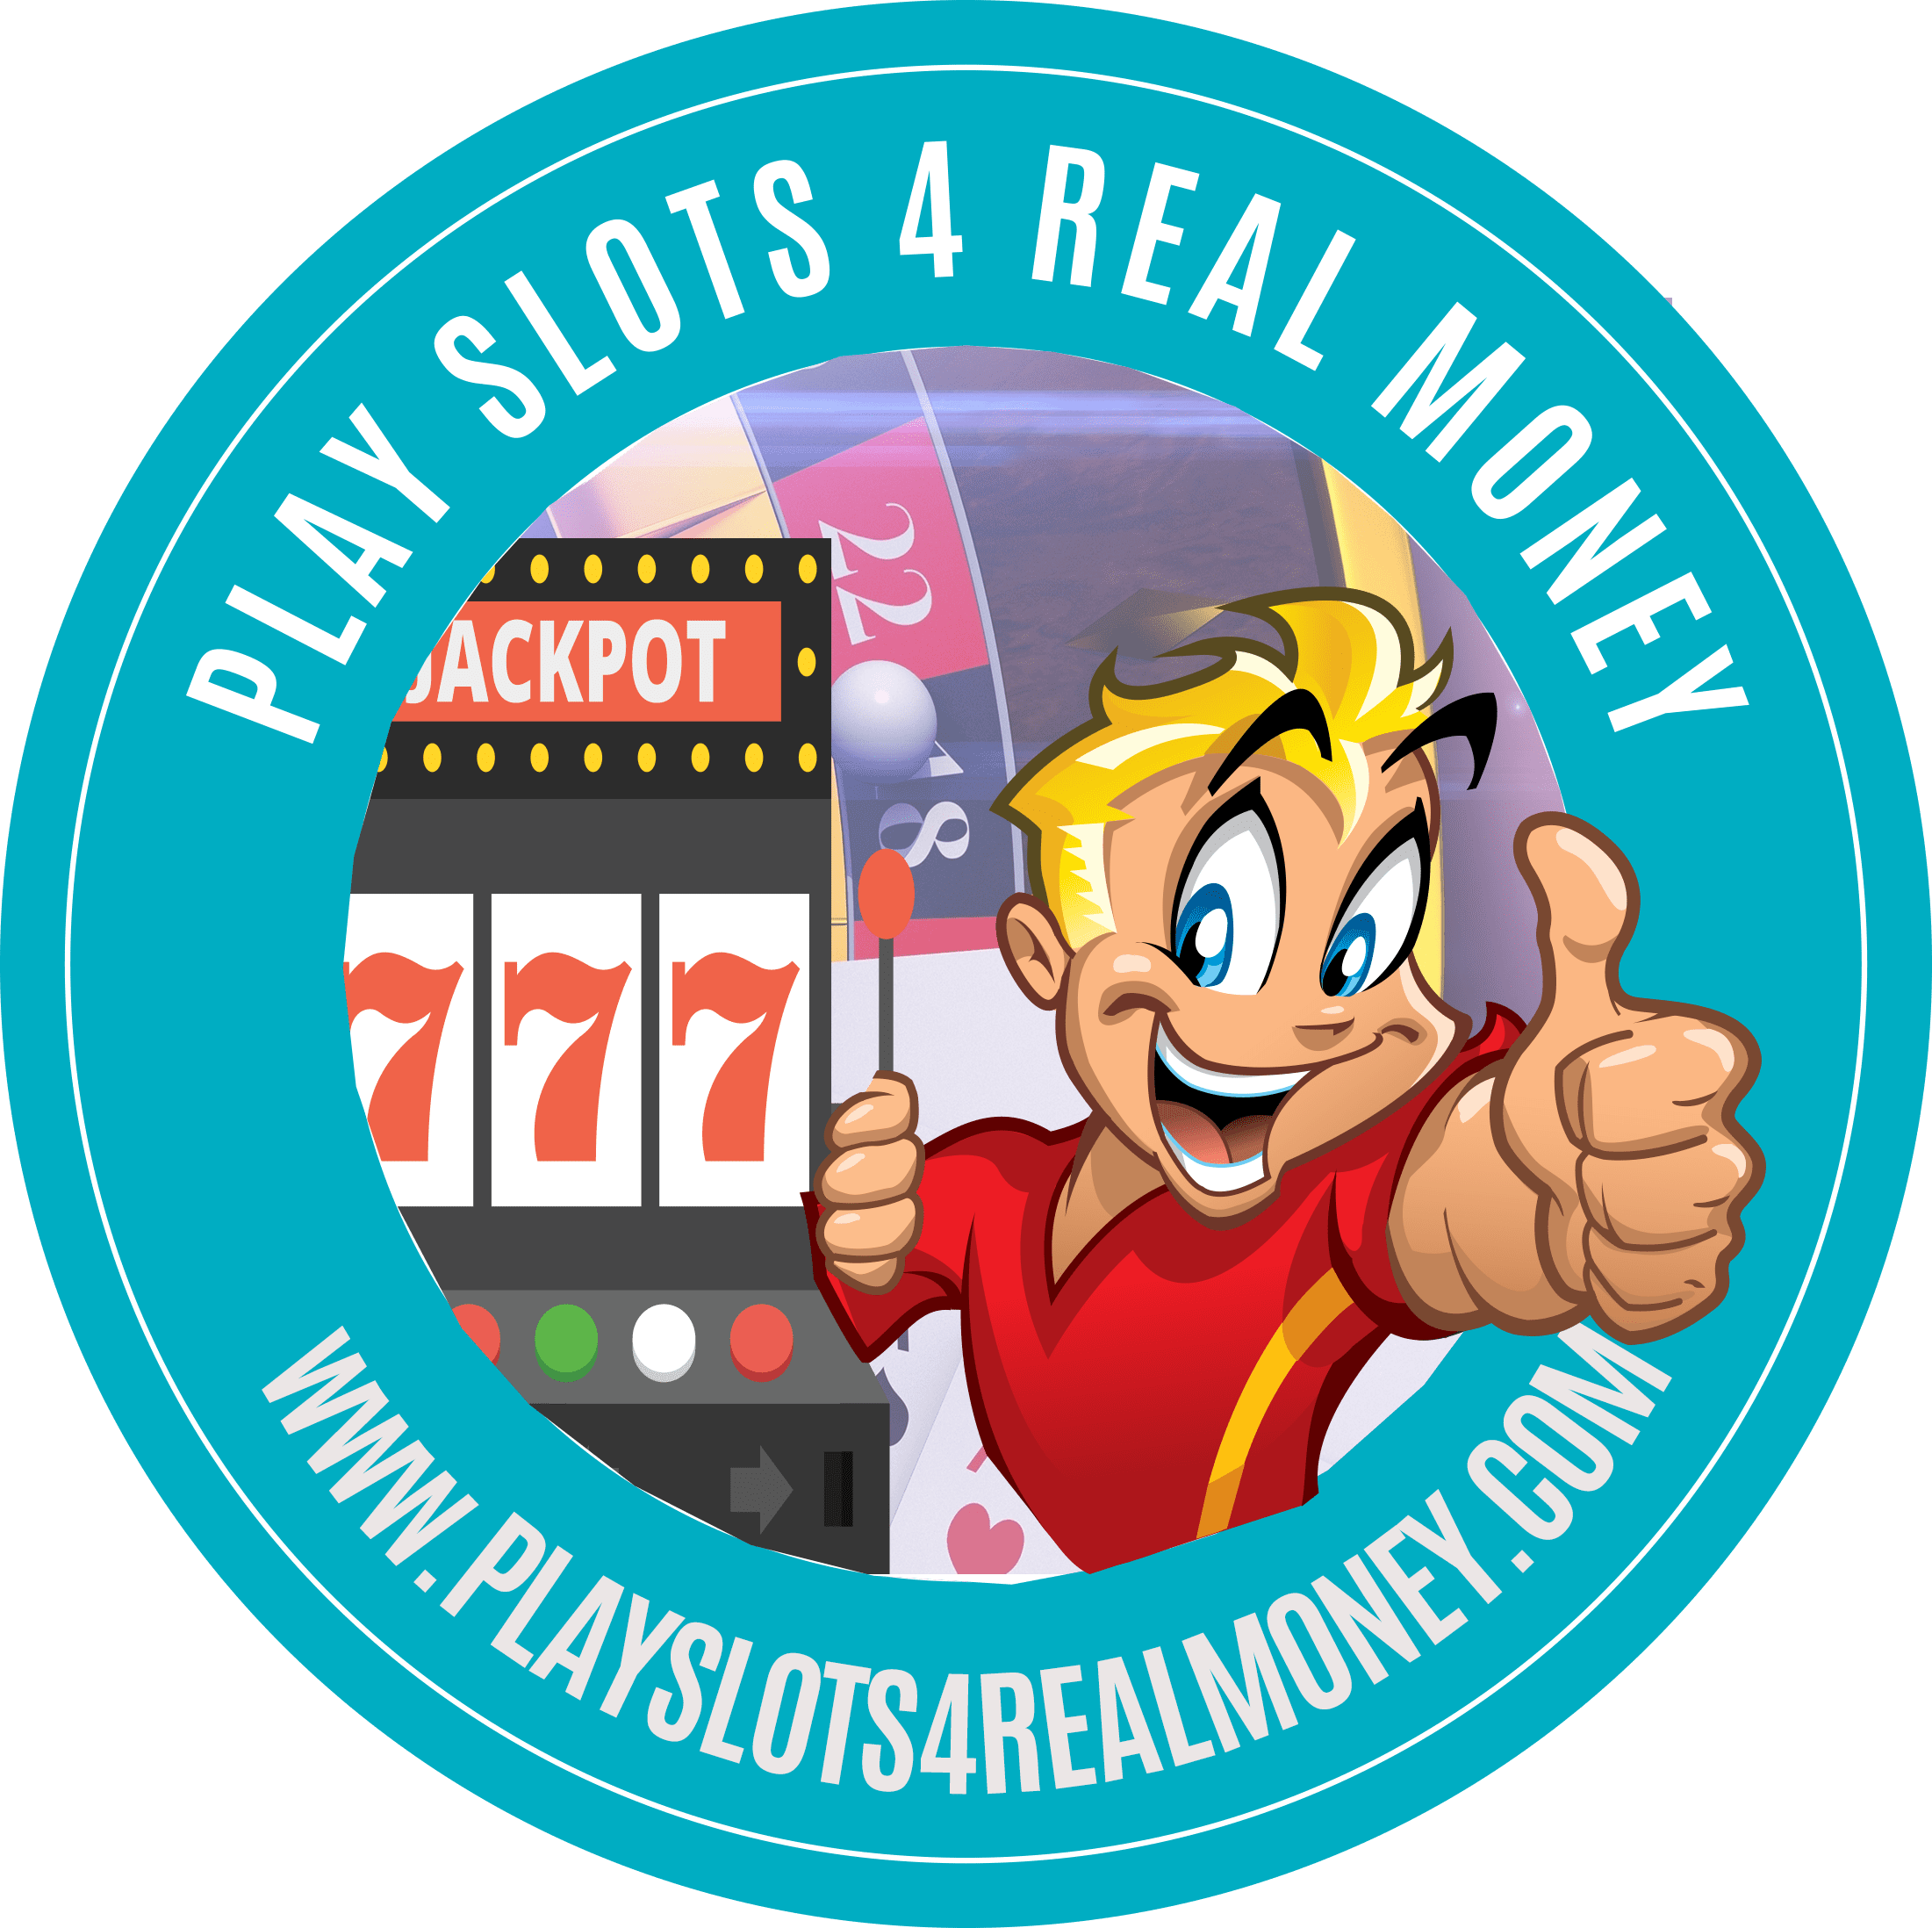 PlaySlots4RealMoney